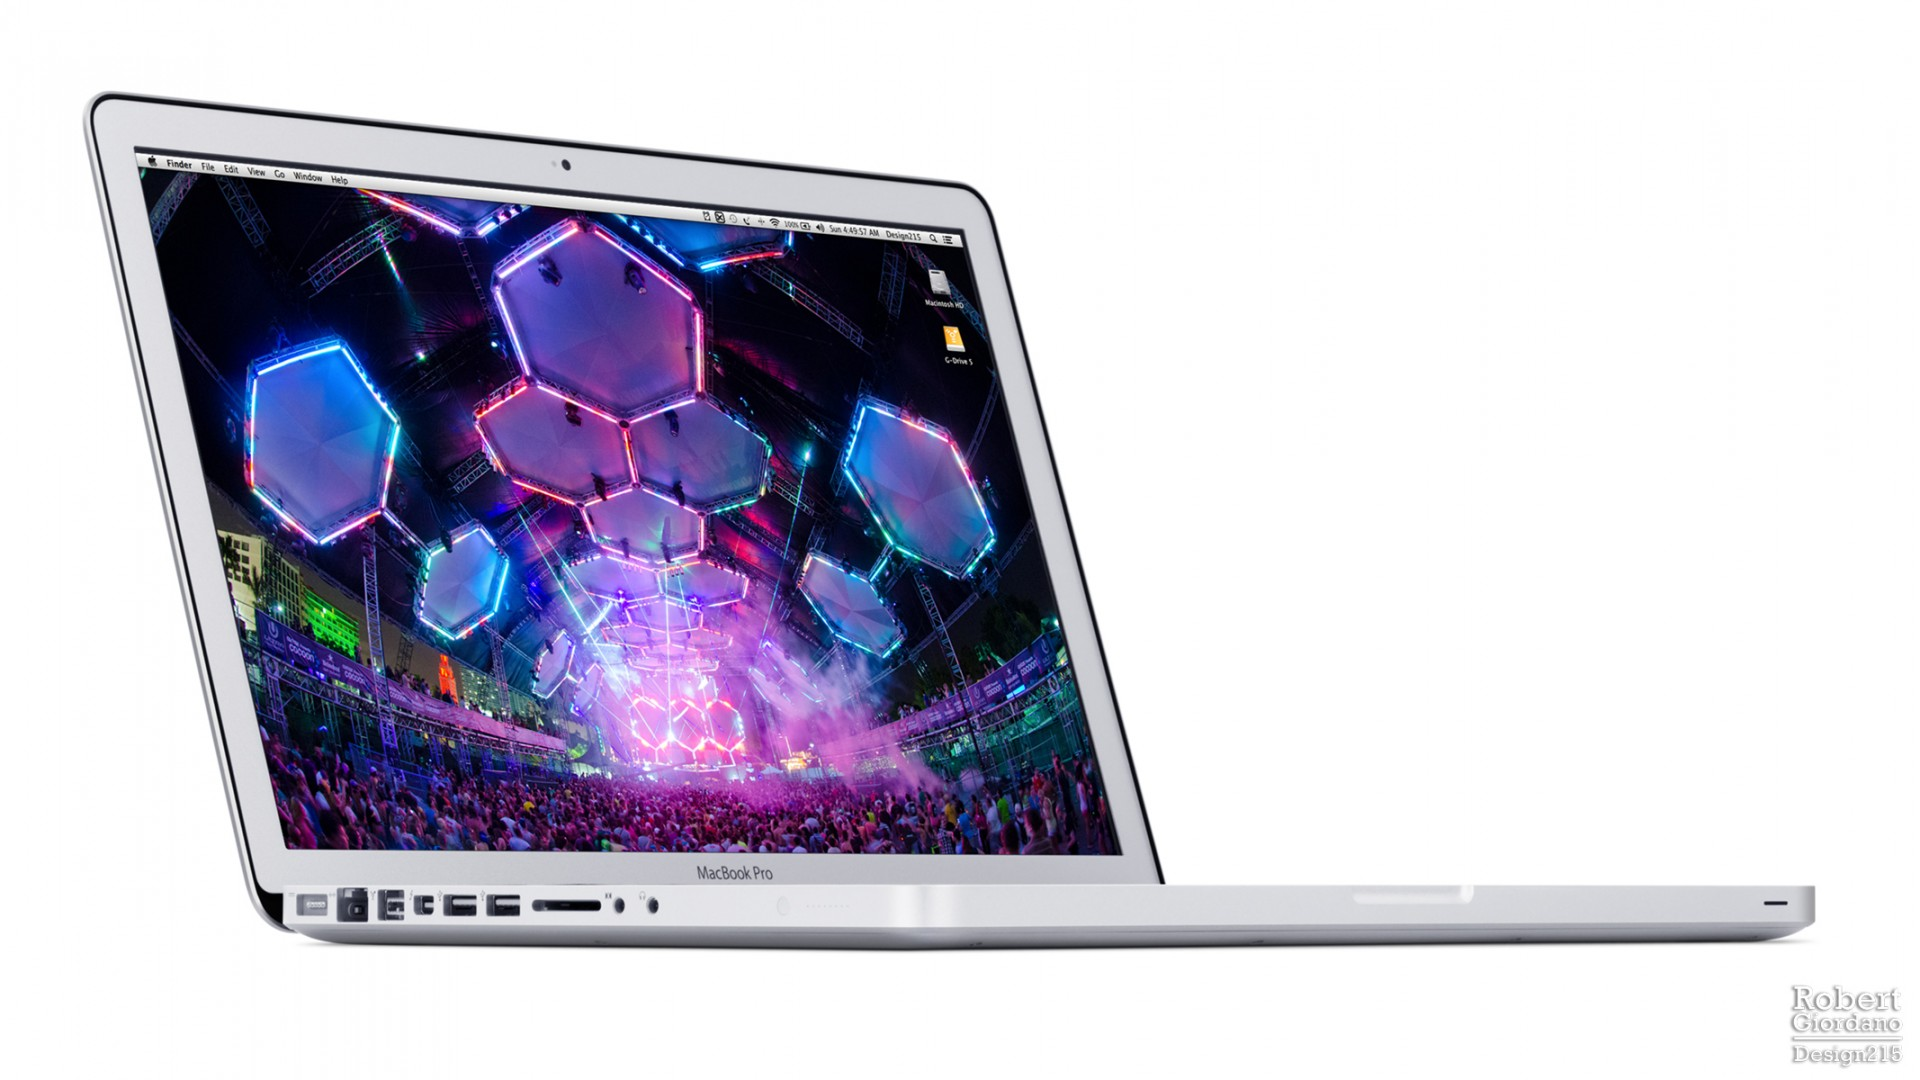 "Product Photography - Design215 15"" Macbook Pro, photo by Robert Giordano"